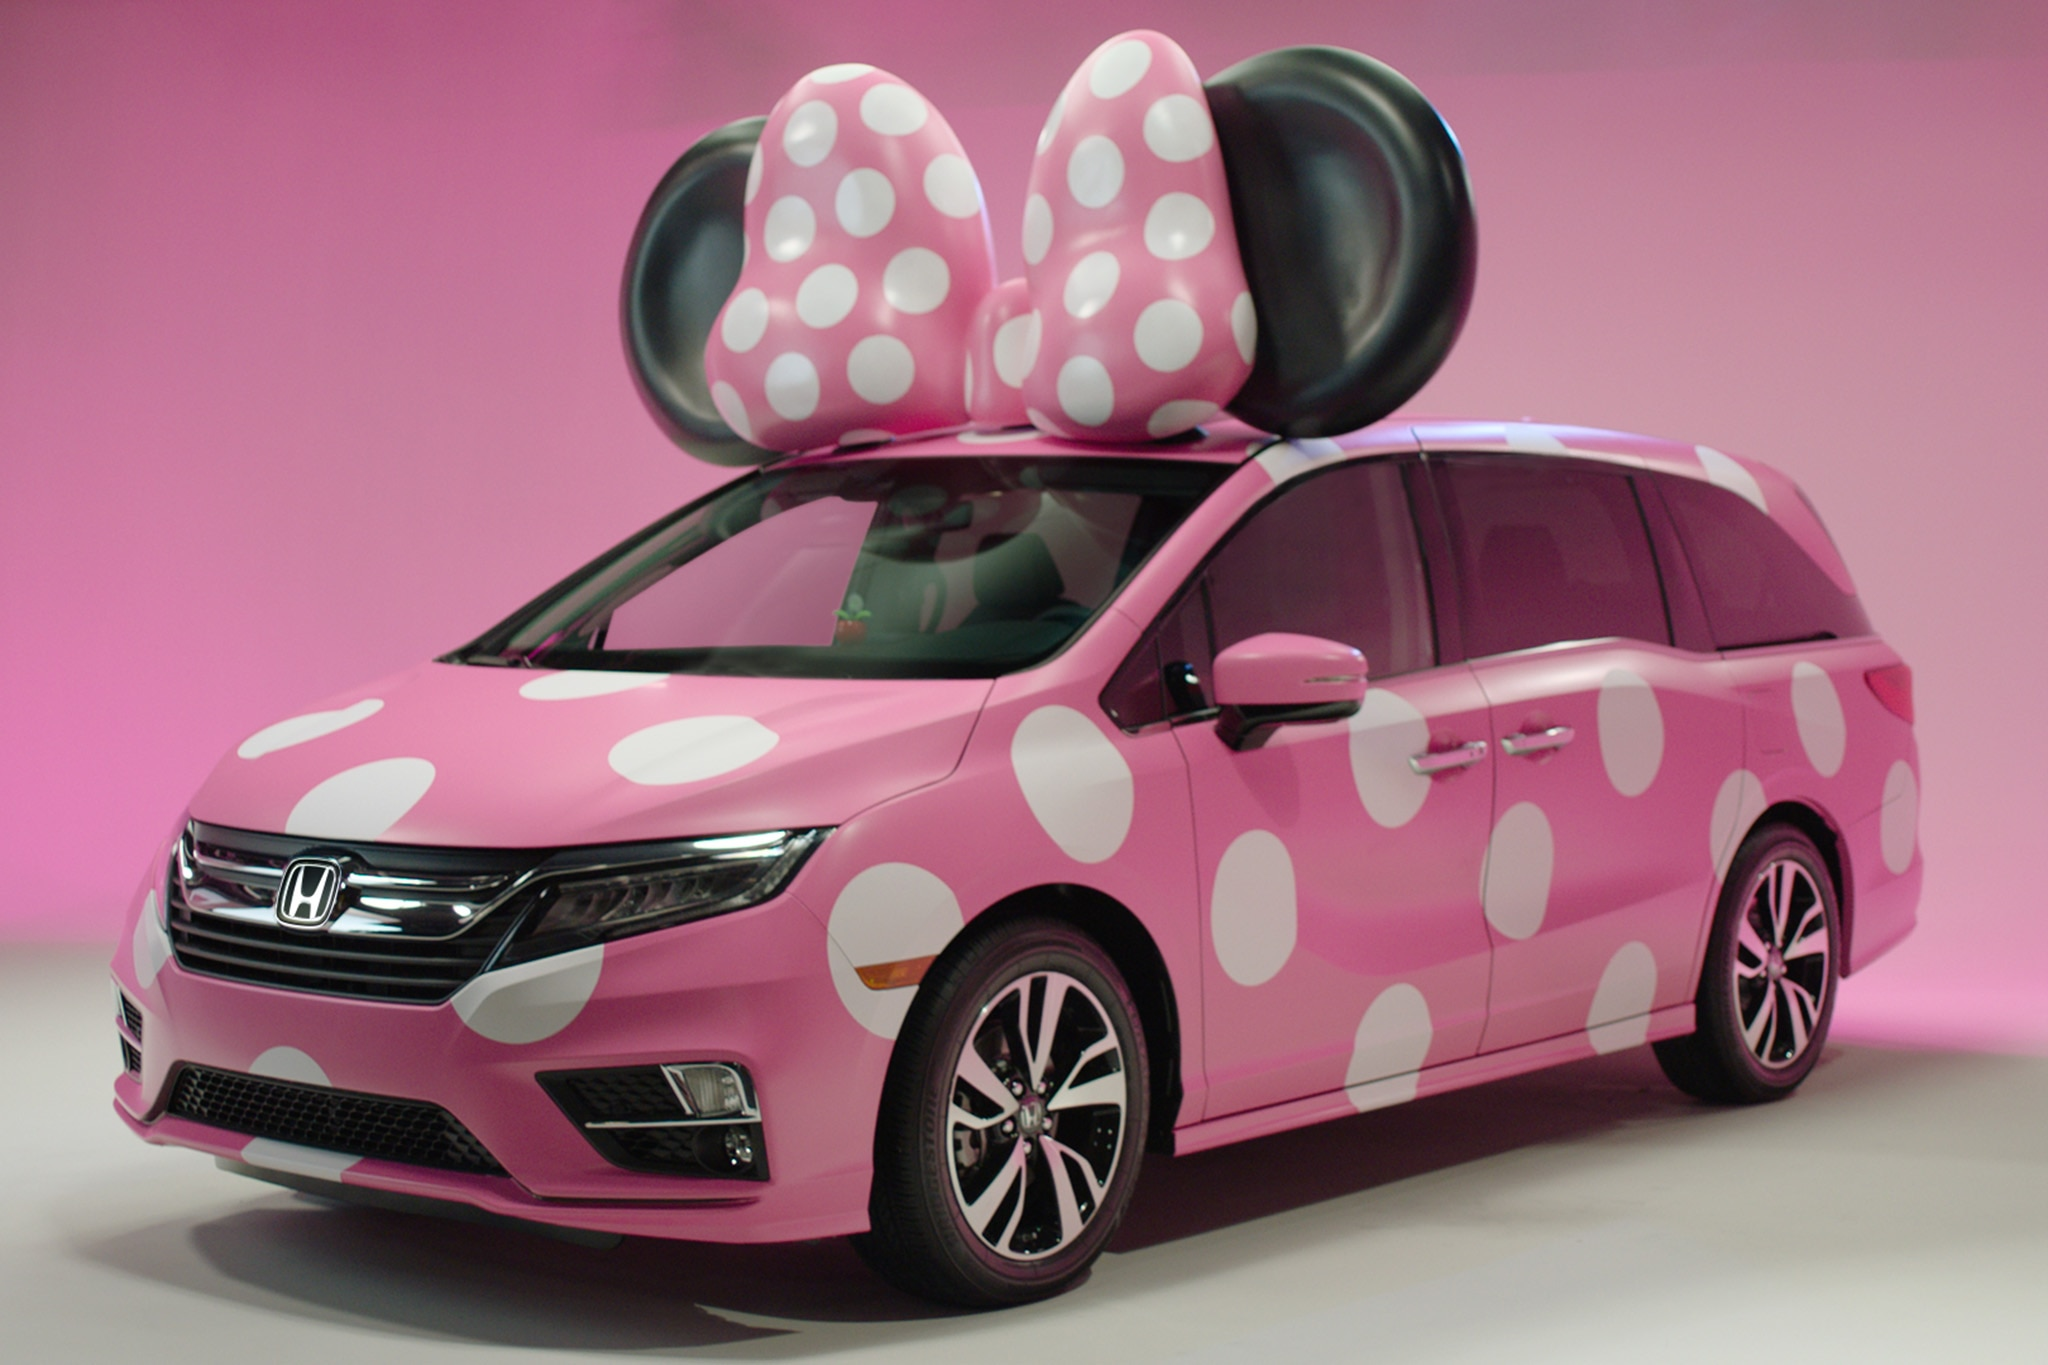 Honda Accessories Detroit >> Honda Debuts All-New 2018 Odyssey Minnie Van | Automobile Magazine